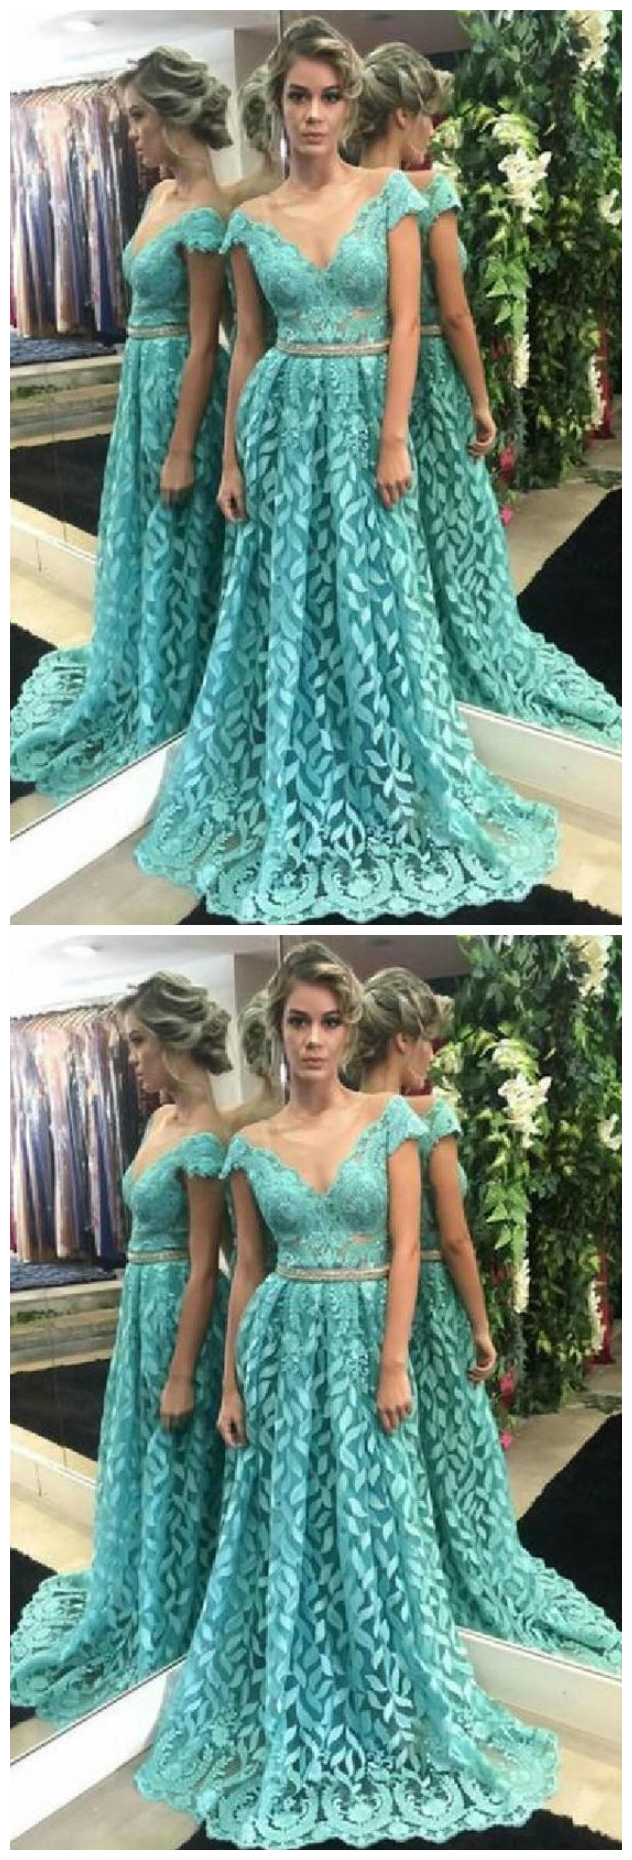 Lace Prom Dress, Party Dresses For Cheap, Party Dresses Backless